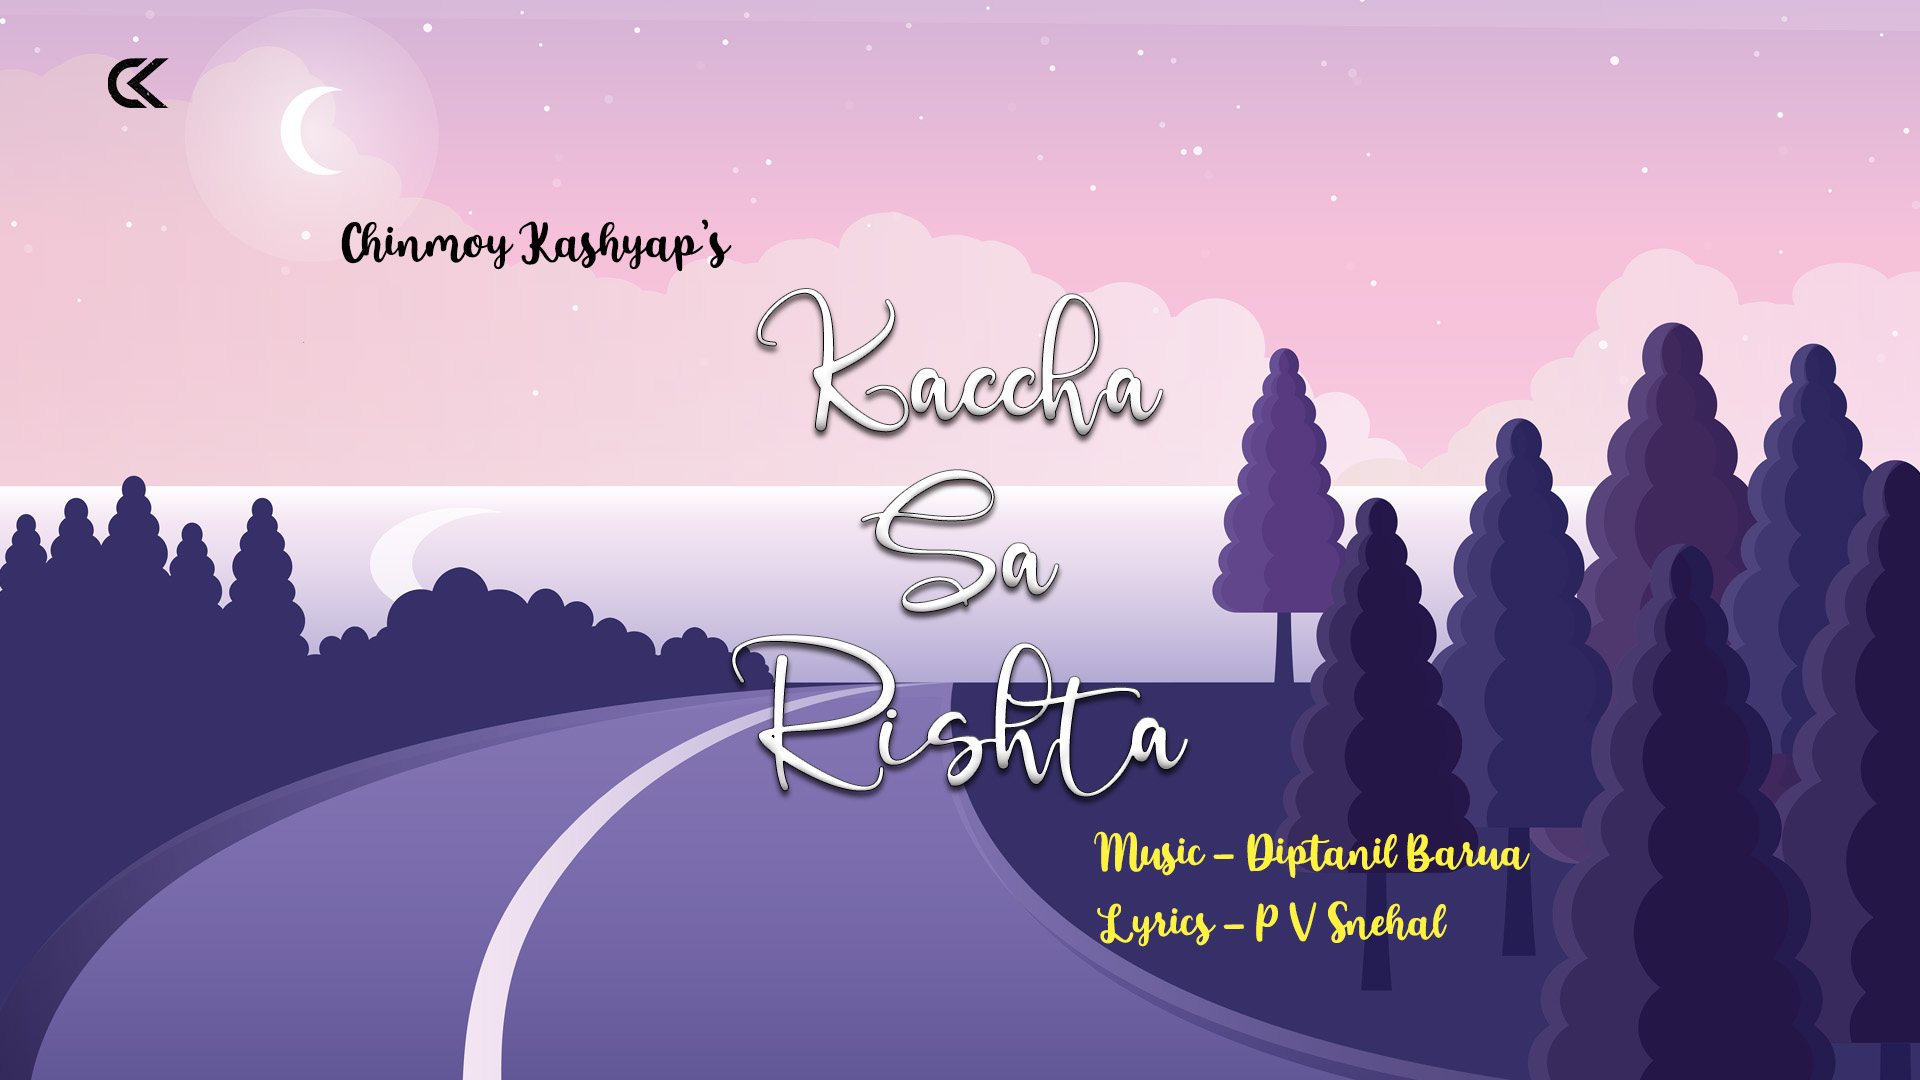 Chinmoy Kashyap drops his first ever song titled Kaccha Sa Rishta on a special occasion